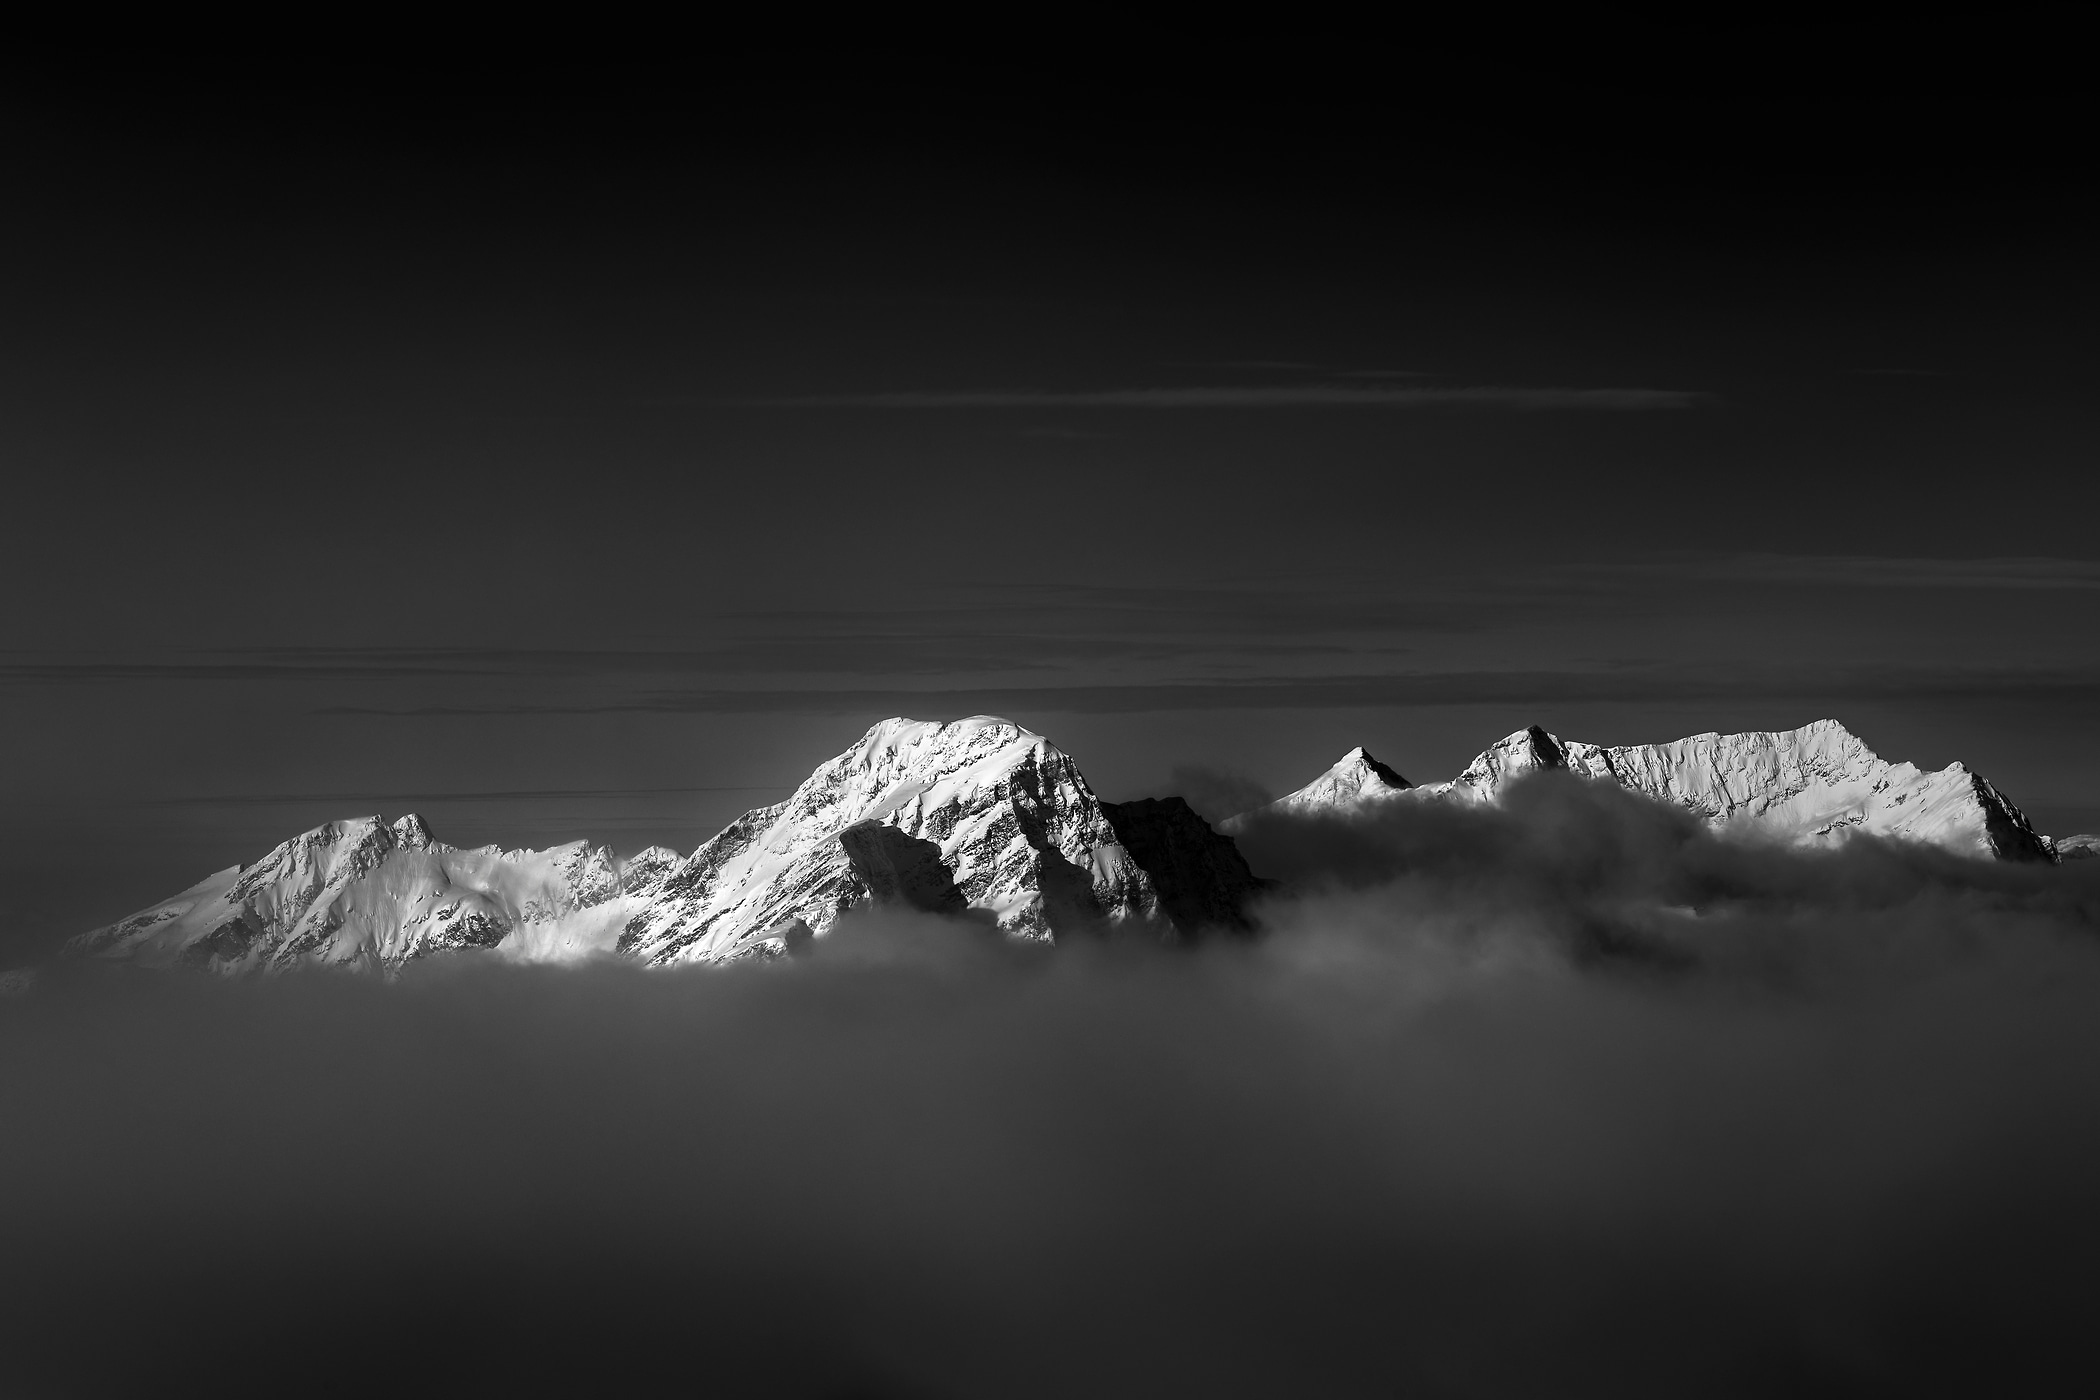 101 megapixels! A very high resolution, large-format VAST photo print of a mountain above the clouds; black and white landscape photograph created by Scott Rinckenberger in Davis Peak, Columbia Mountains, British Columbia, Canada